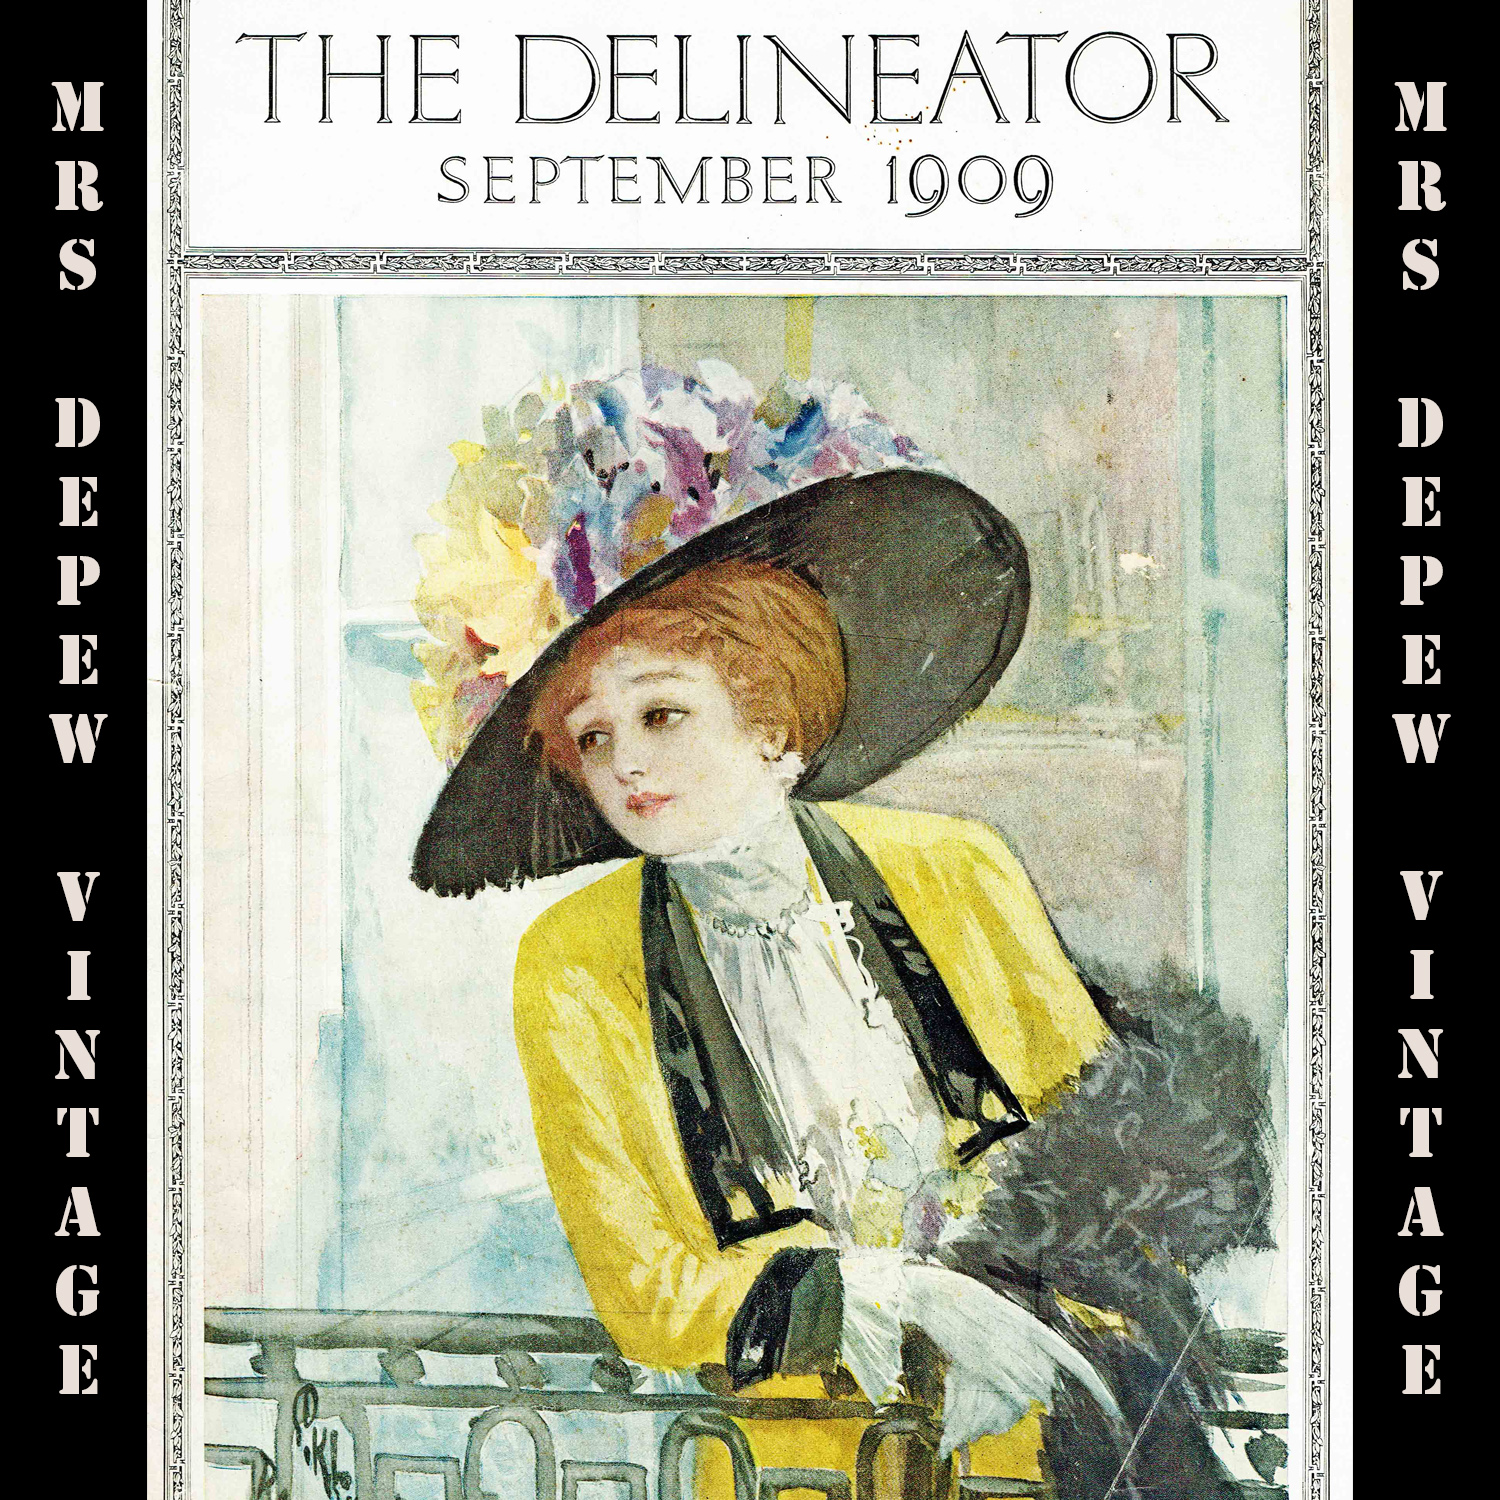 The Delineator September 1909